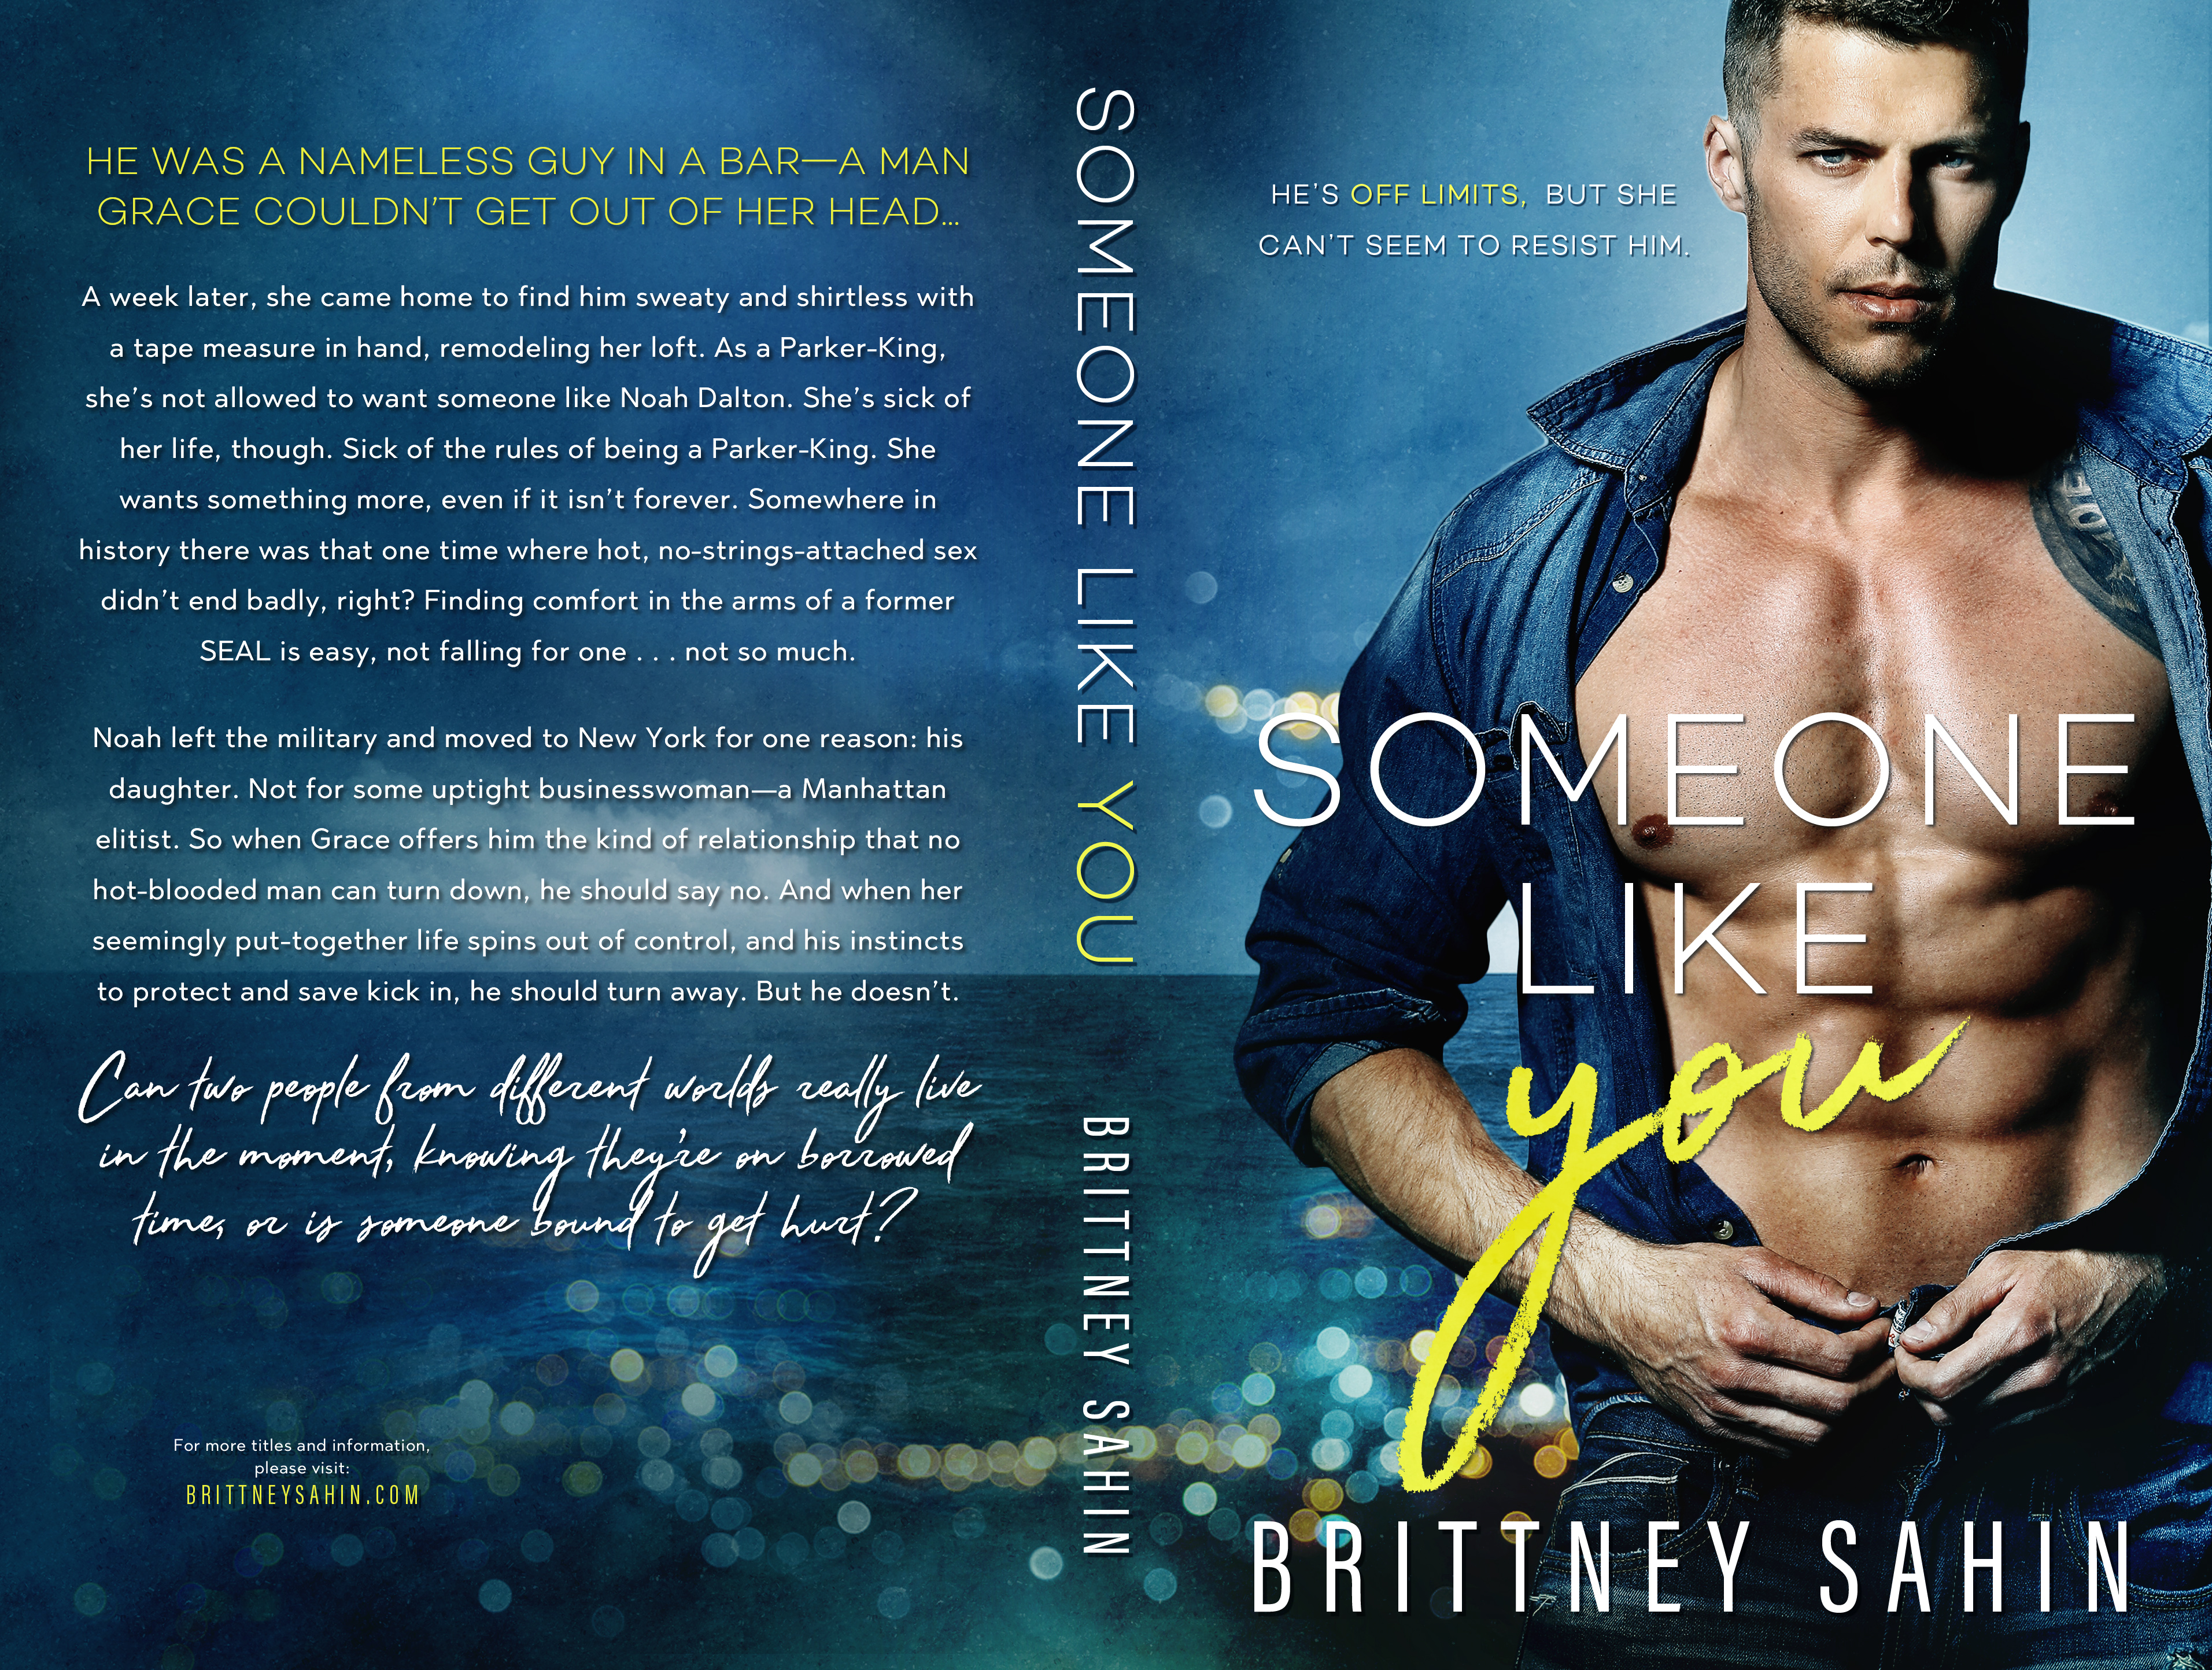 BSSomeoneLikeYouBookCover5x8_BW_294 (1)